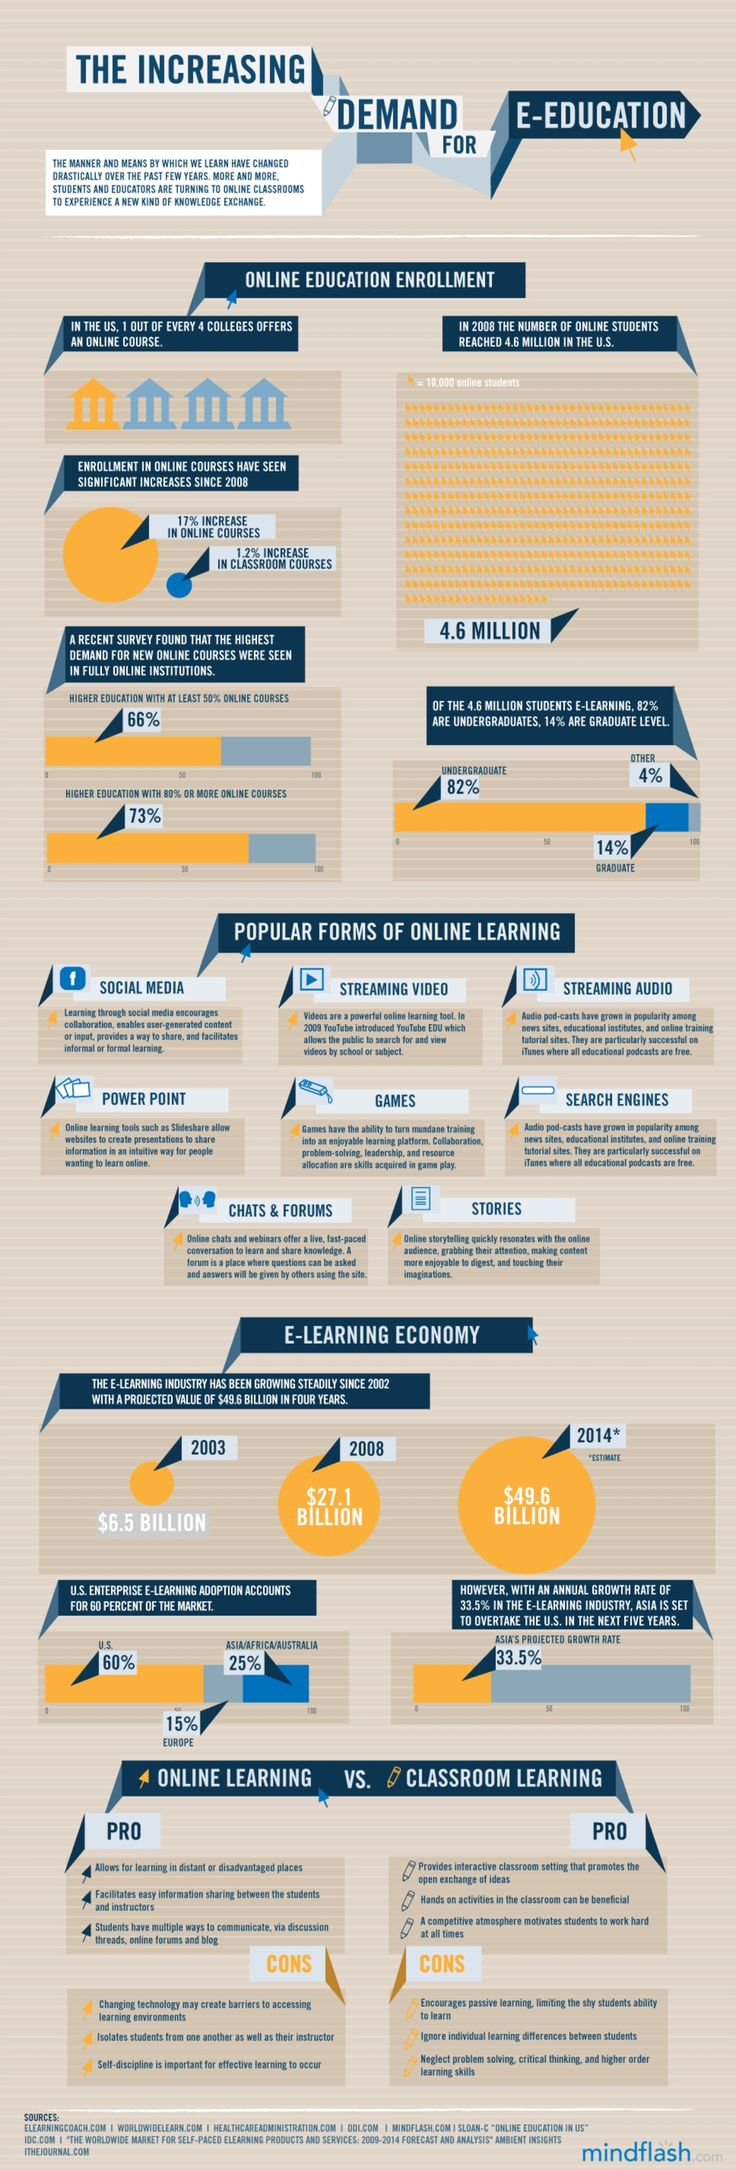 State of e-learning industry 2013  http://www.learndash.com/state-of-the-e-learning-industry-infographic/#